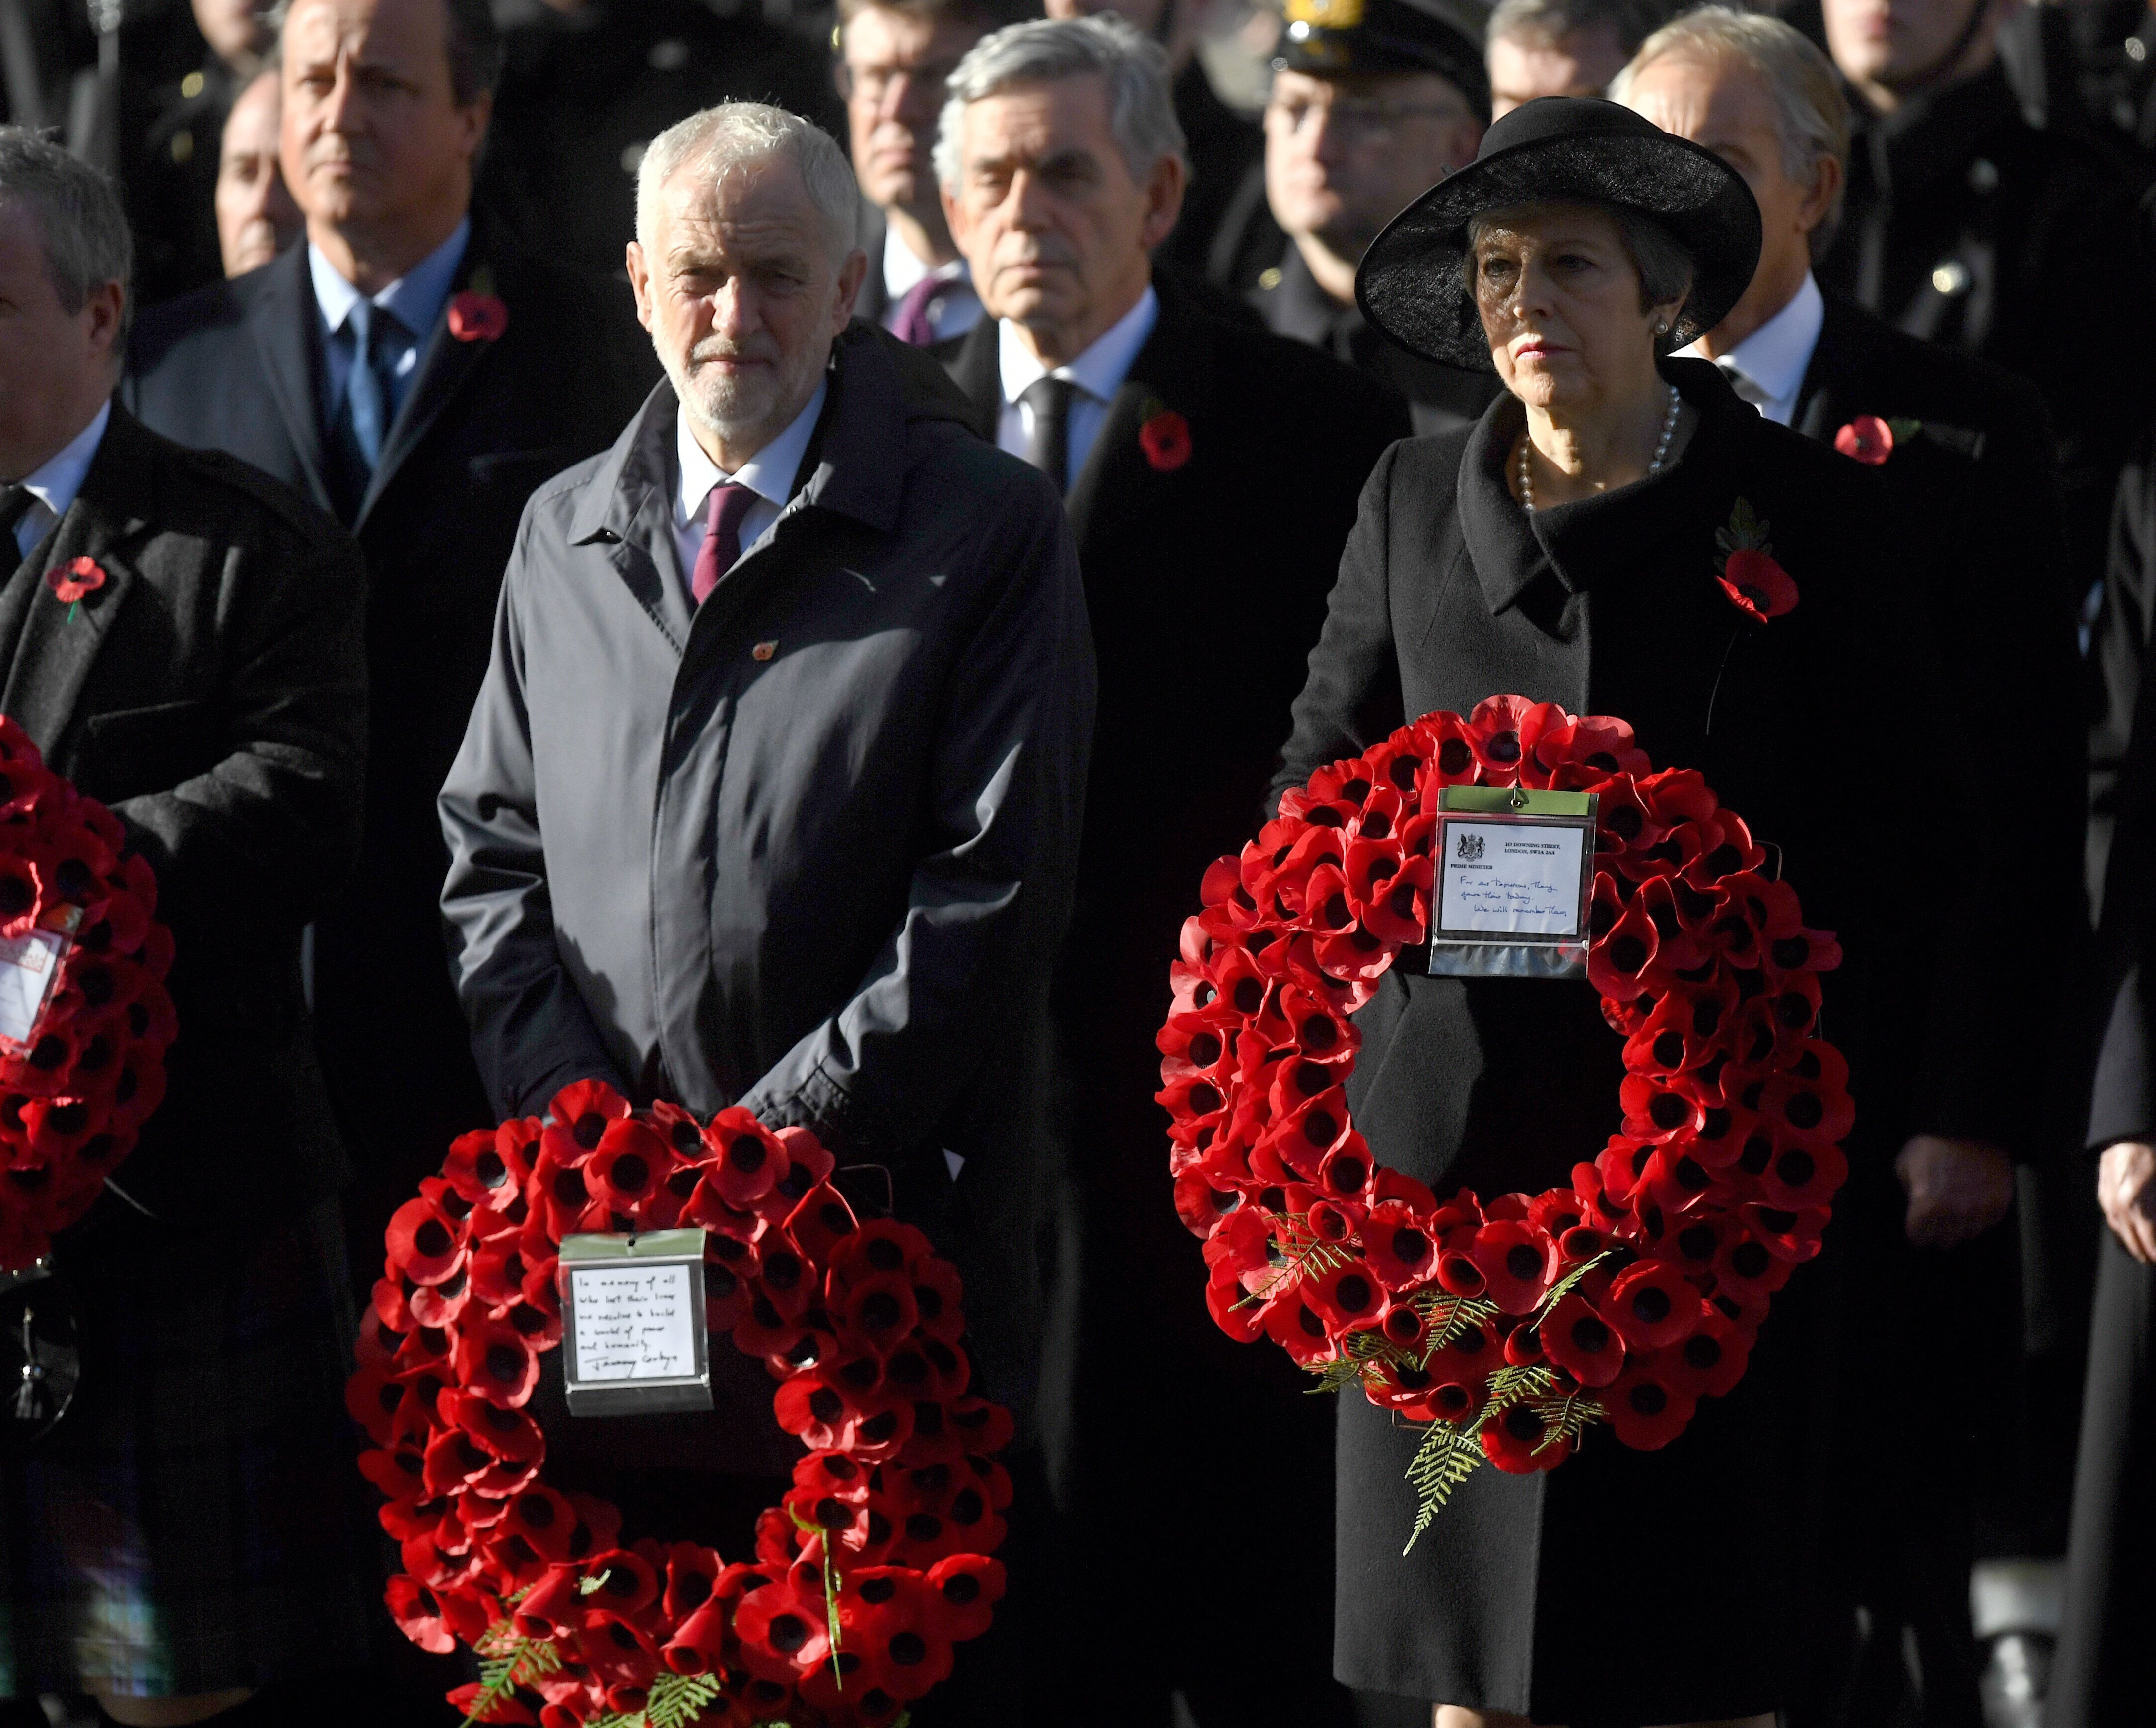 Theresa May And Jeremy Corbyn Lay Wreaths With German President To Mark Armistice Day